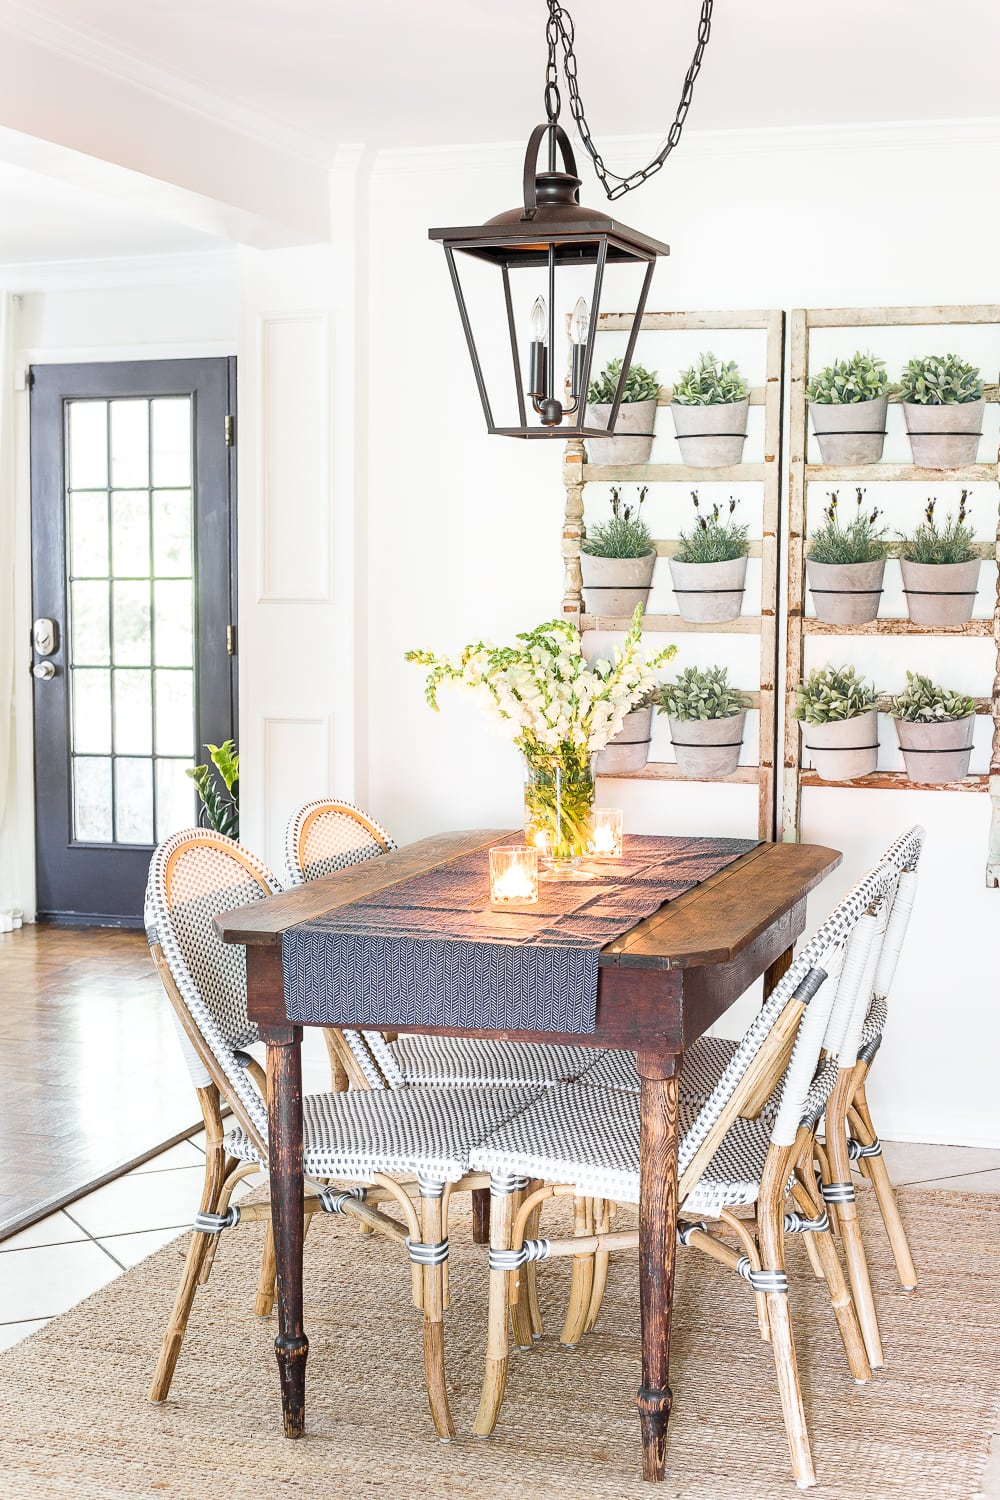 this bright farmhouse style kitchen has planter art on the walls and a vintage lantern overhead light